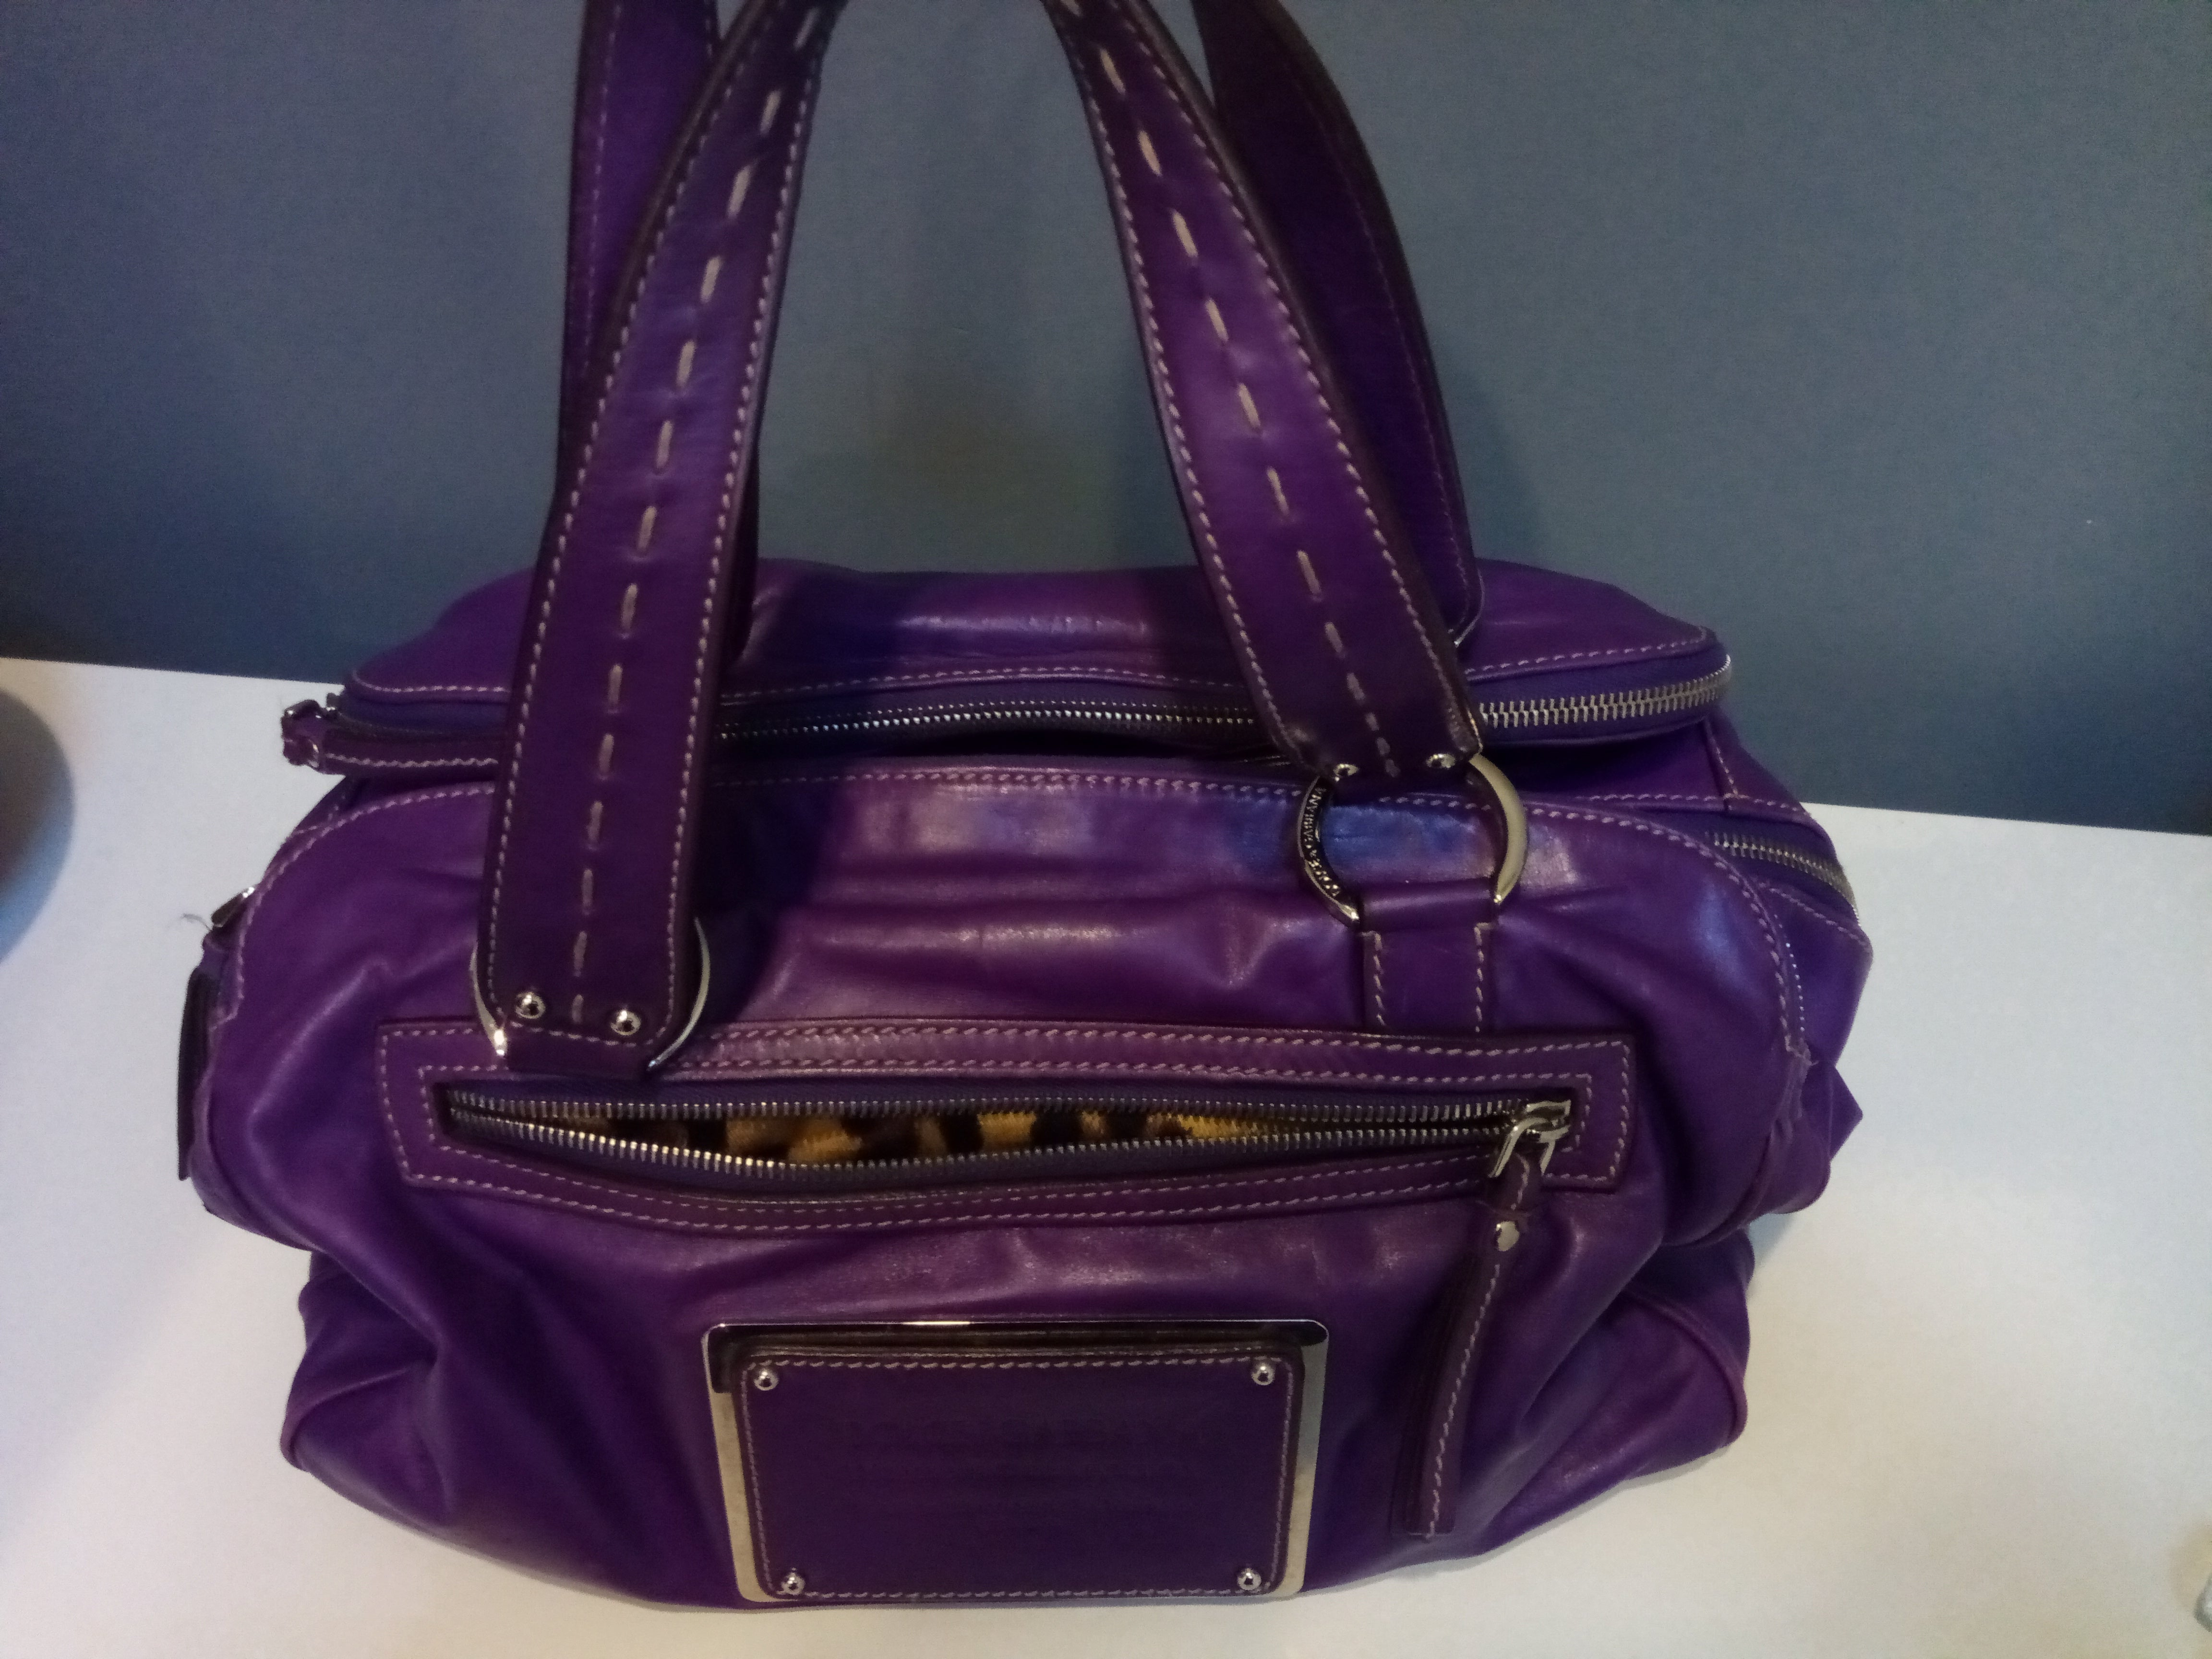 Dolce and Gabbana Purple Leather Bag with Animal Print Interior, Three Compartments and Several Pockets